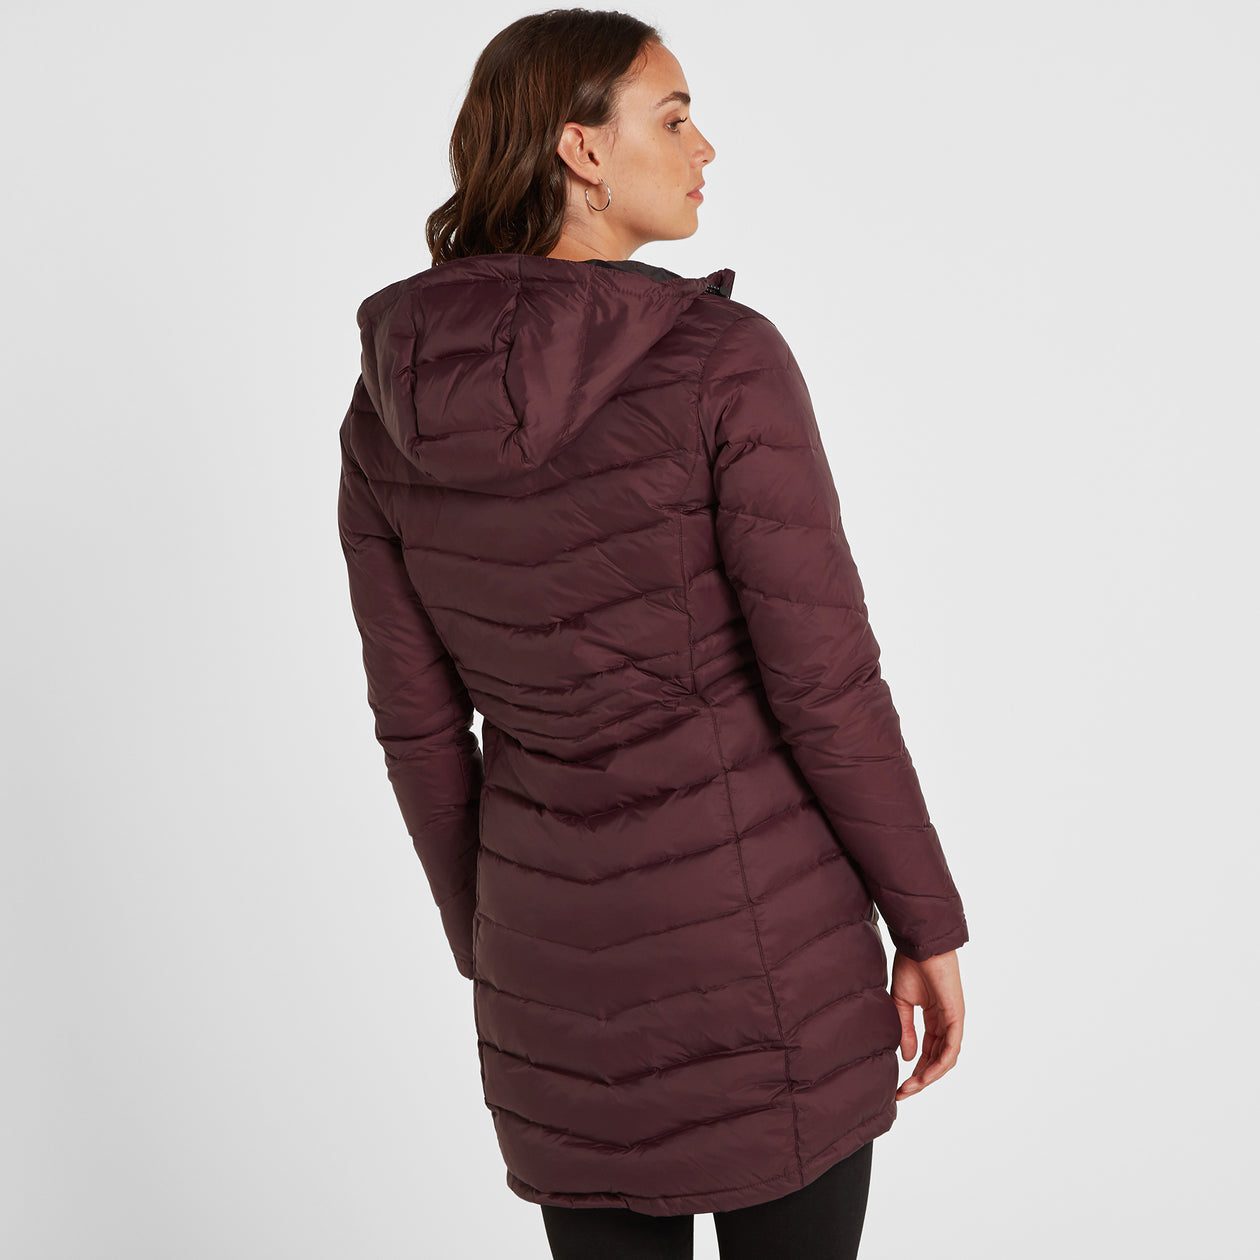 Bramley Womens Down Jacket - Deep Port image 4